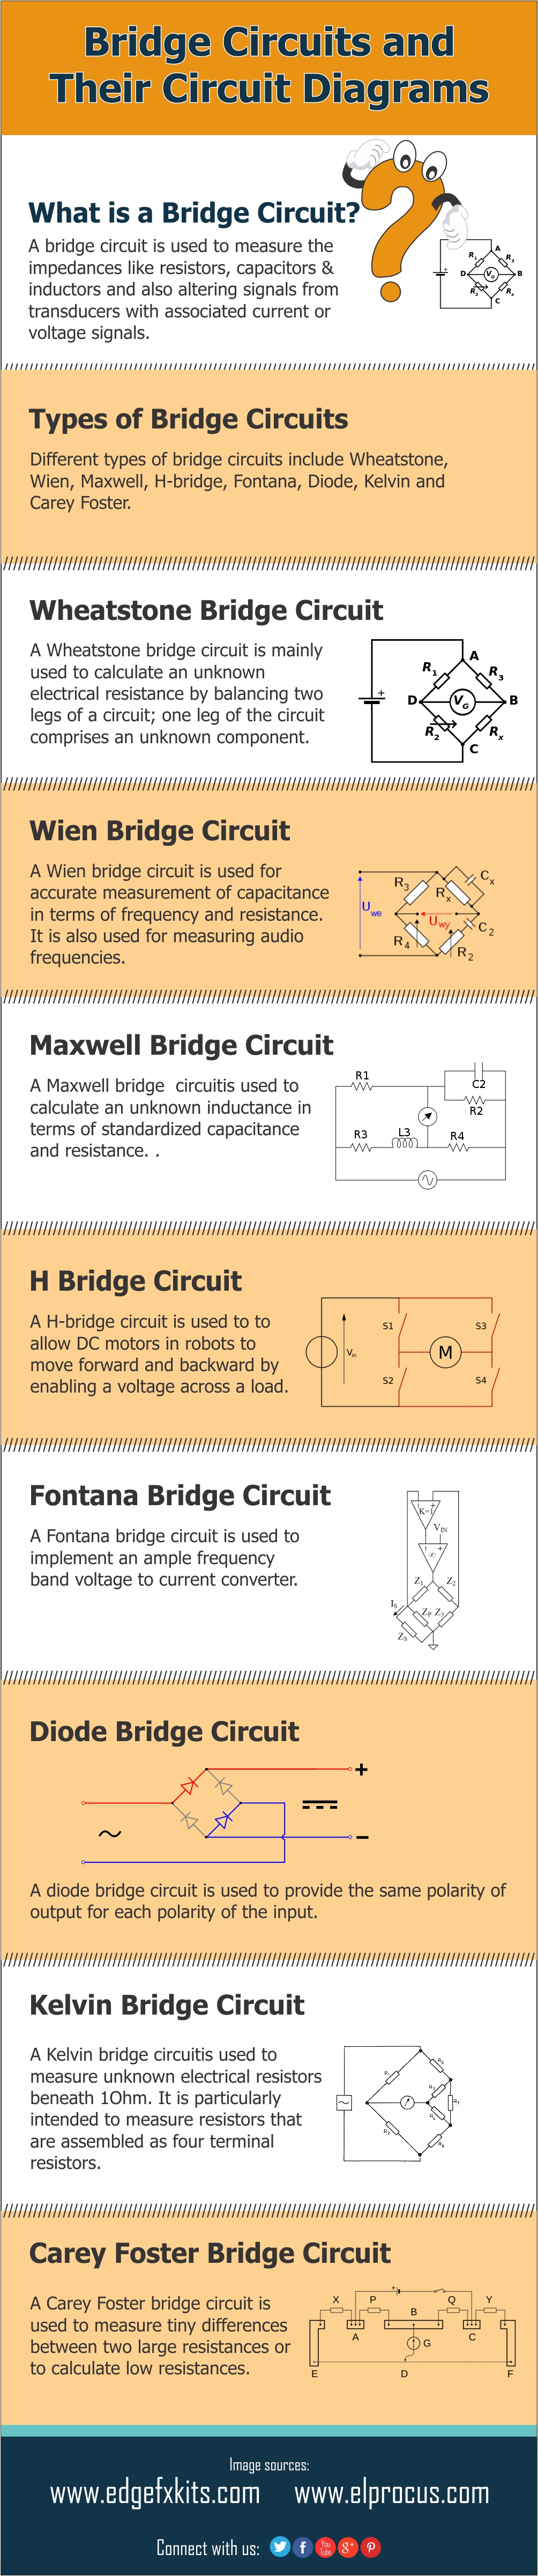 Different Types of Bridge Circuits and Its Functions | Электроника ...